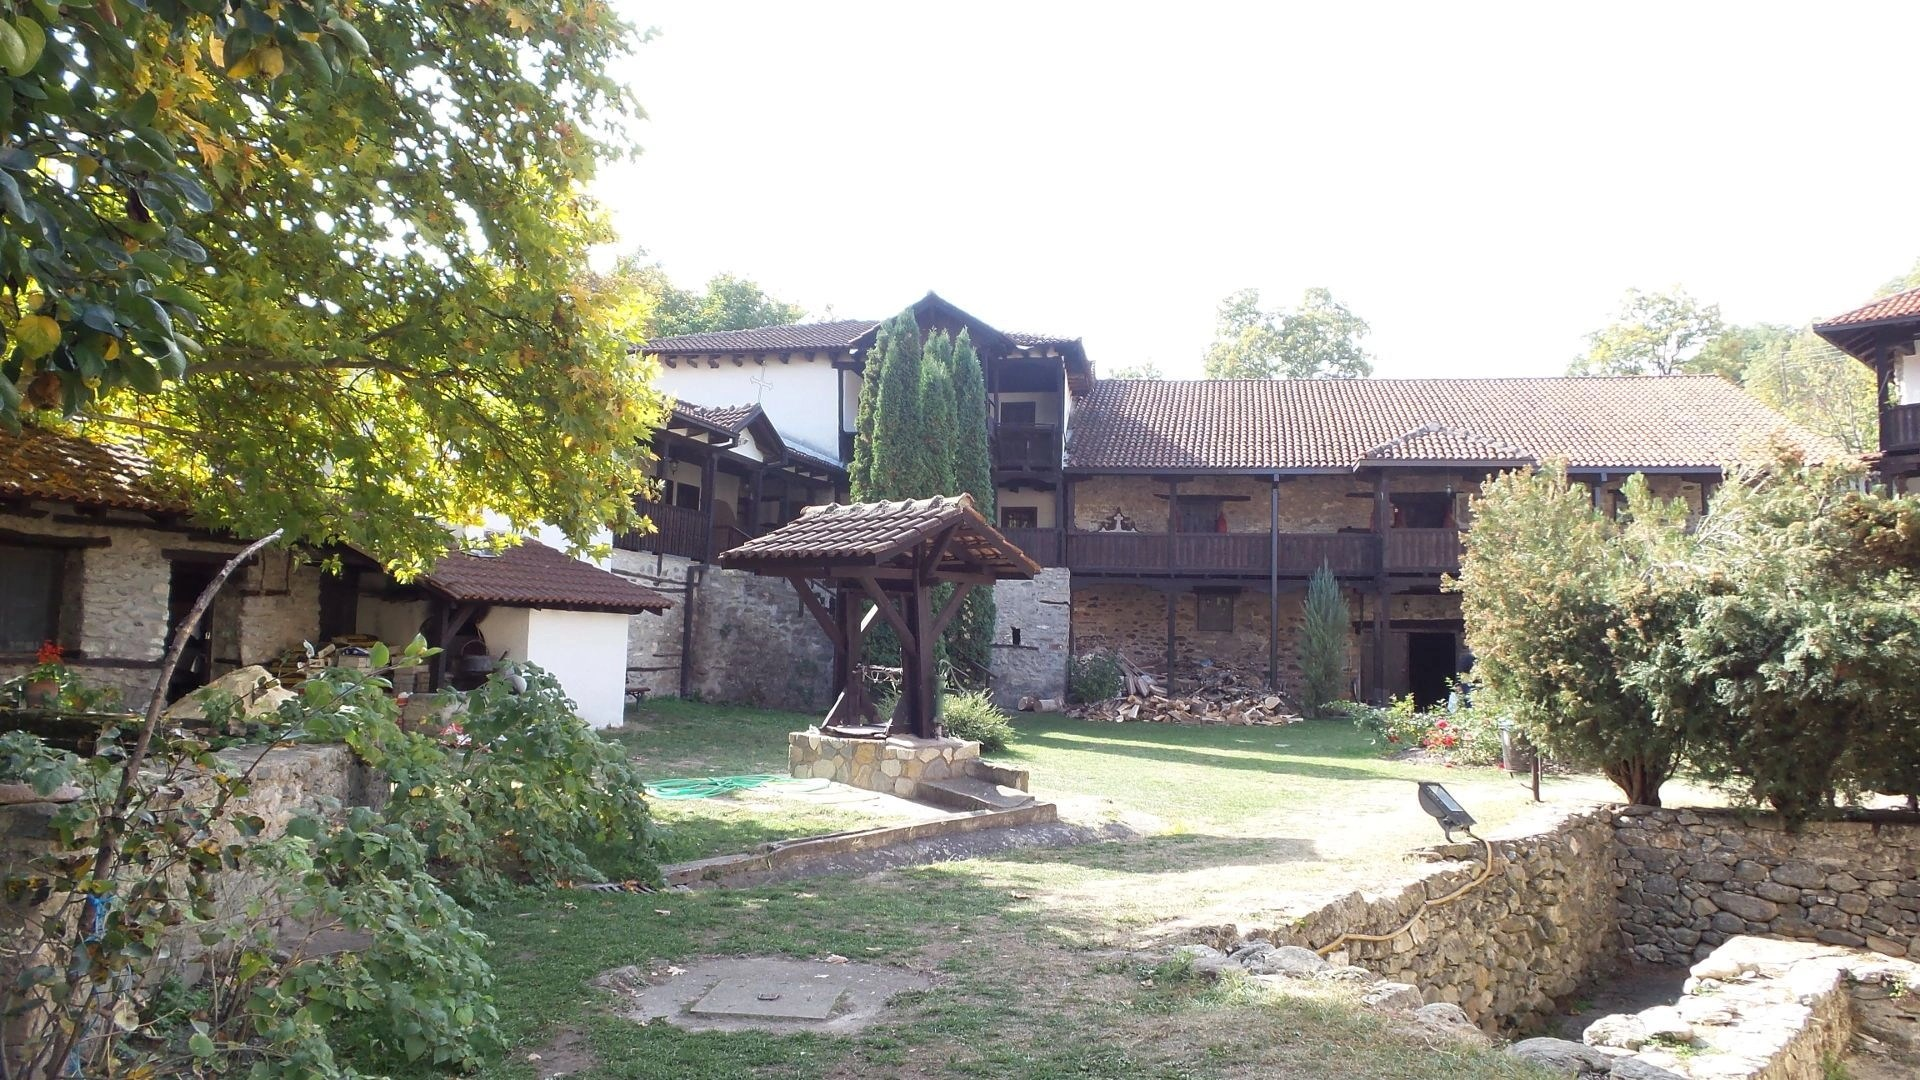 The yard at Marko's Monastery